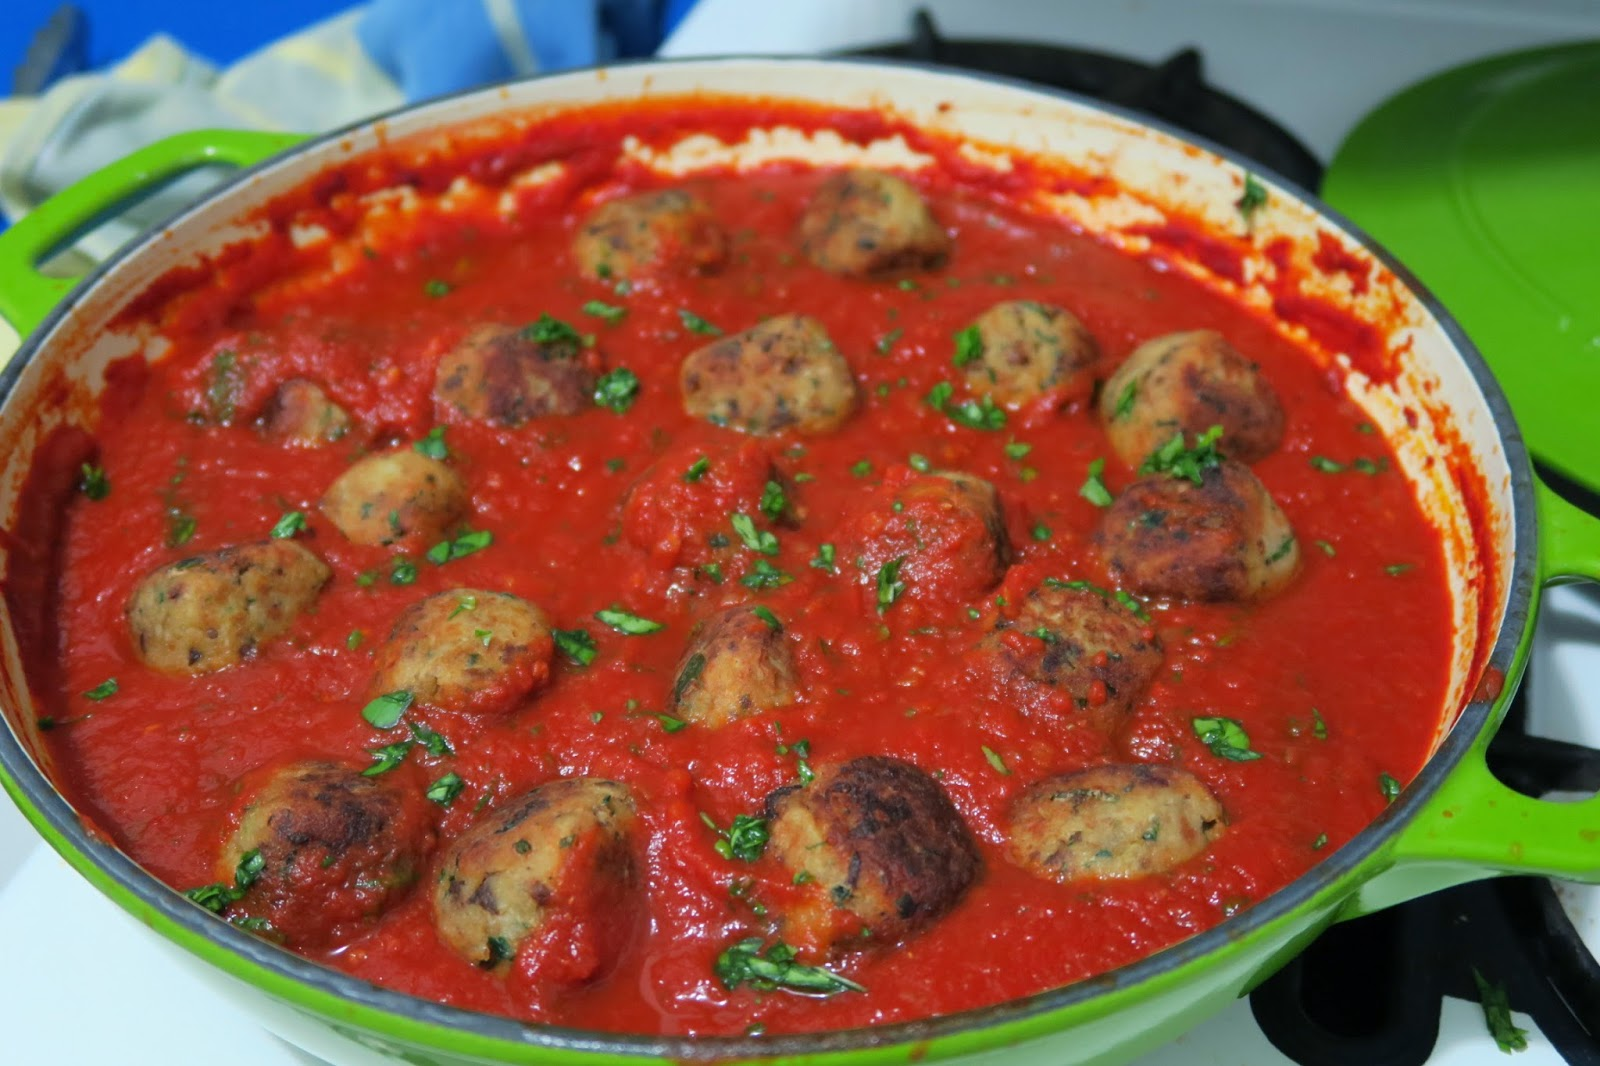 Eggplant and porcini meatless meatballs with tomato sauce.